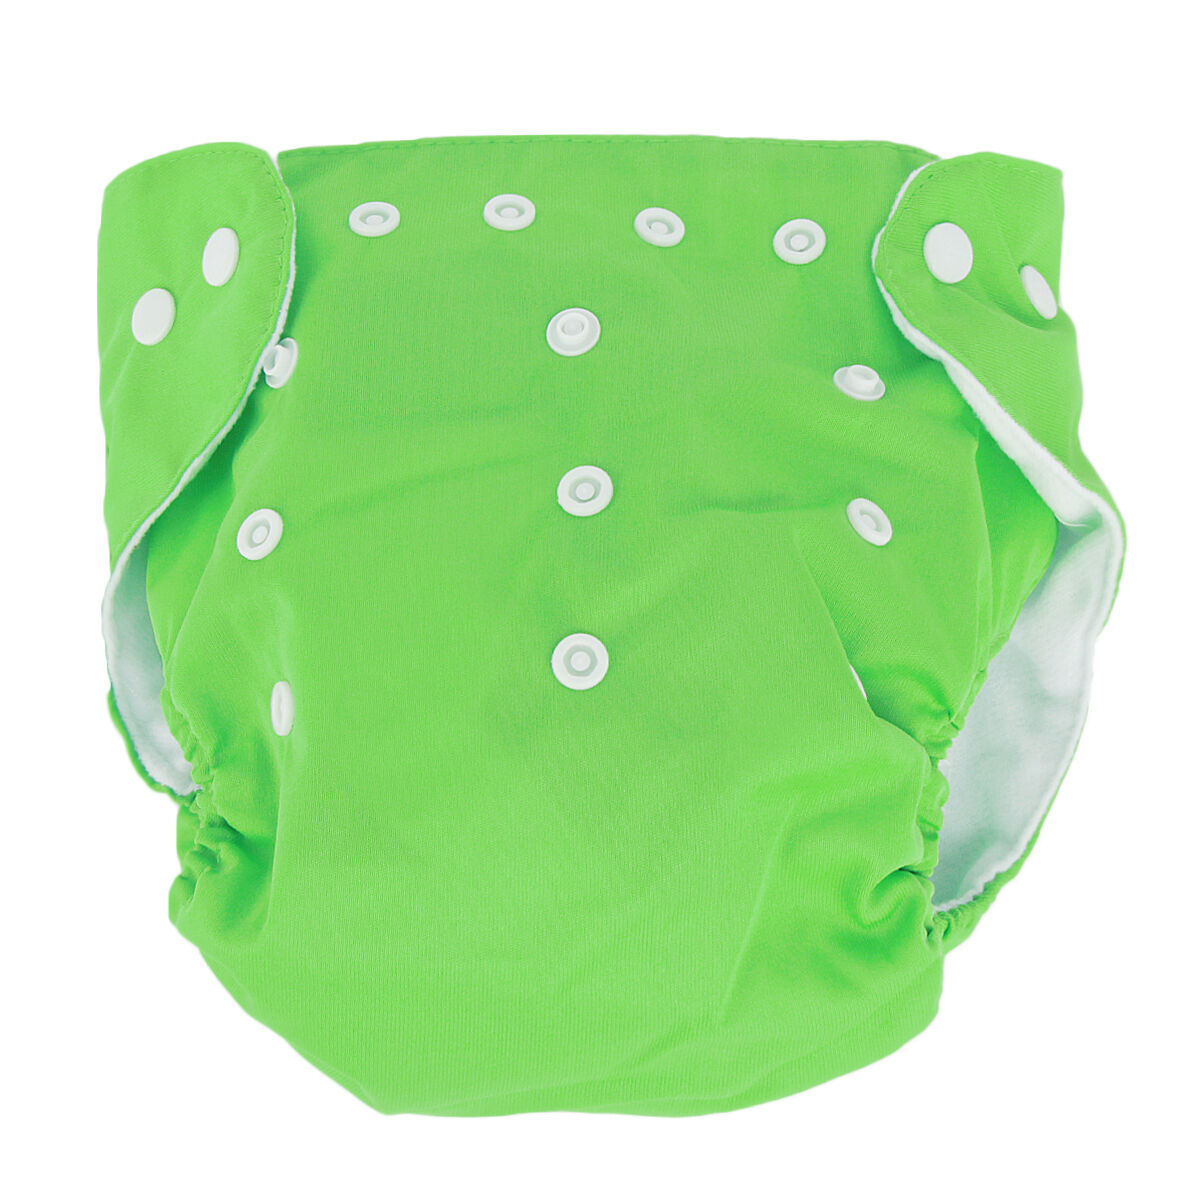 5pcs+ 5Inserts Adjustable Reusable Baby Washable Infant Nappy Soft Cloth Diapers Green